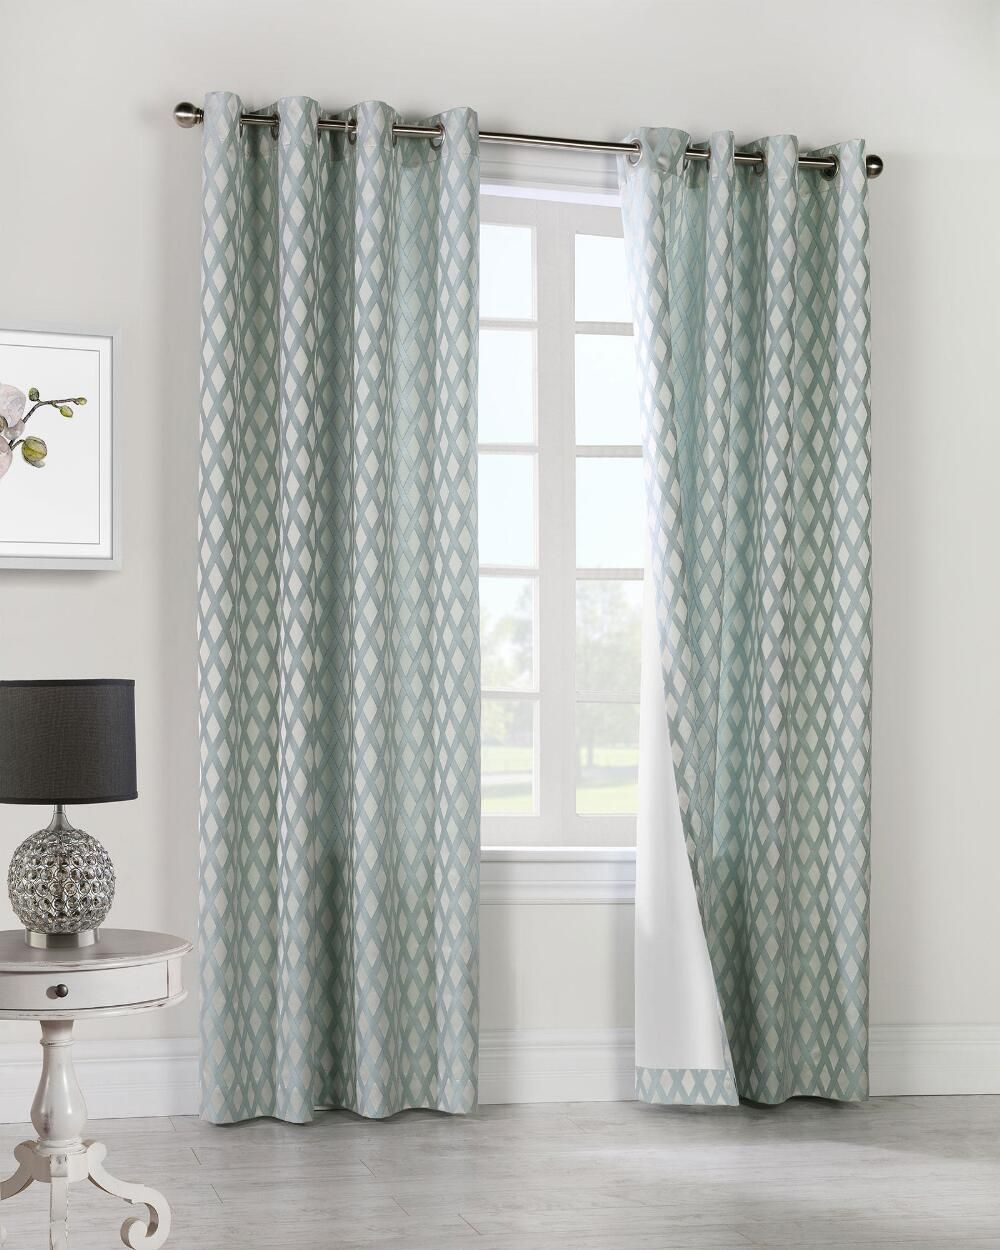 Criss Cross Woven Jacquard Curtain Panel In 2020 Panel Curtains